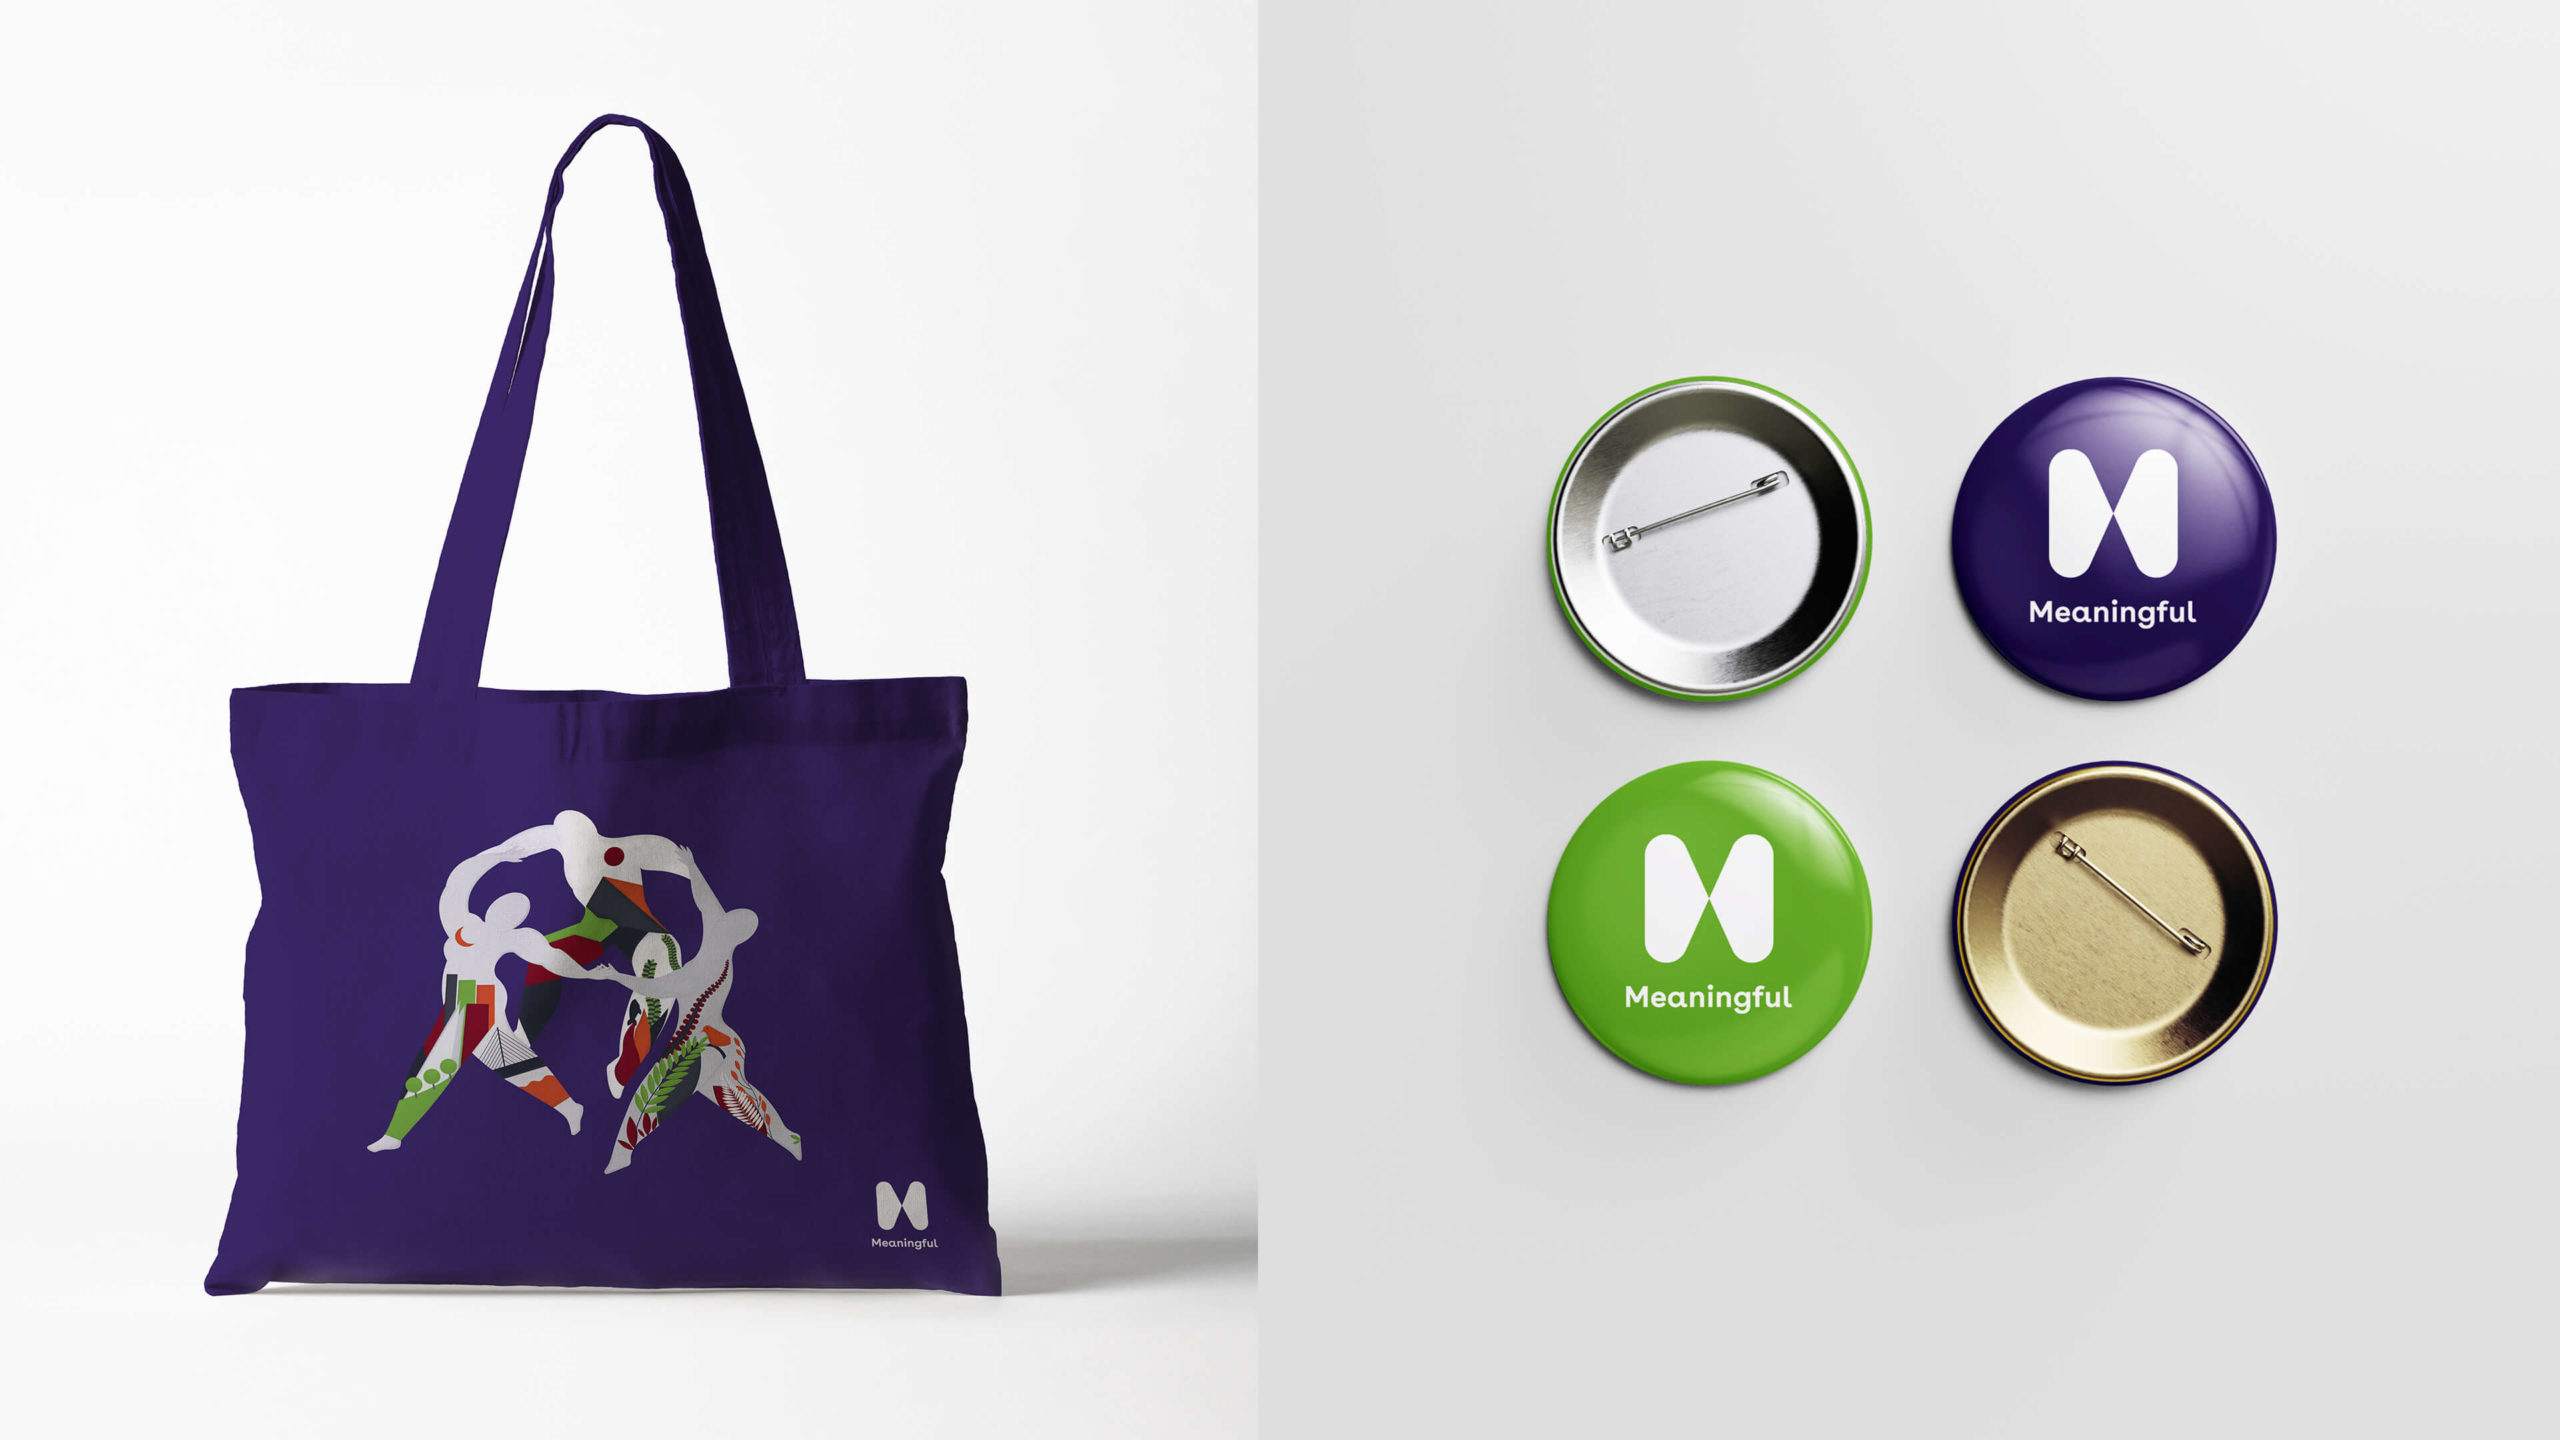 Meaningful_tote-&-pins-